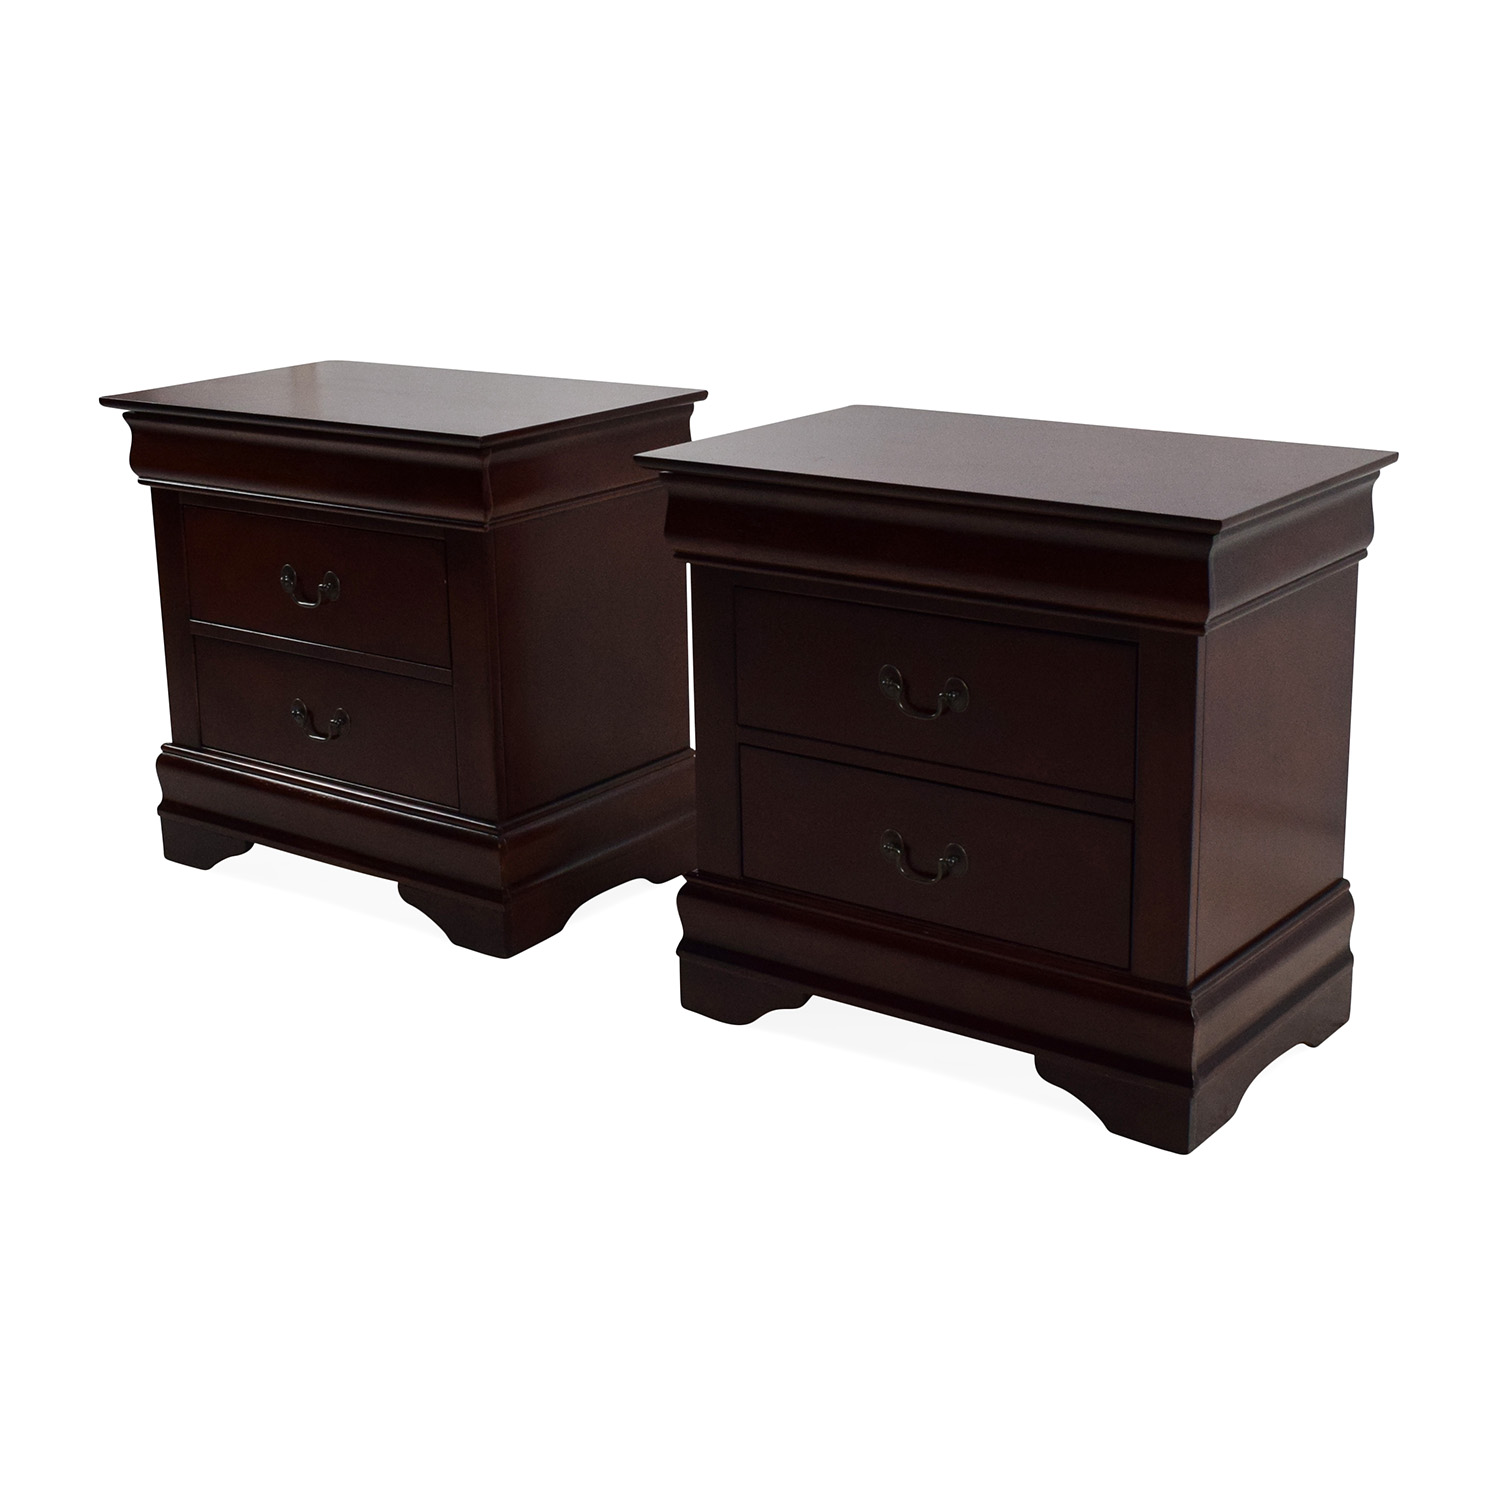 62 off set of 2 wooden nightstands with drawers tables for Wood nightstand with drawers